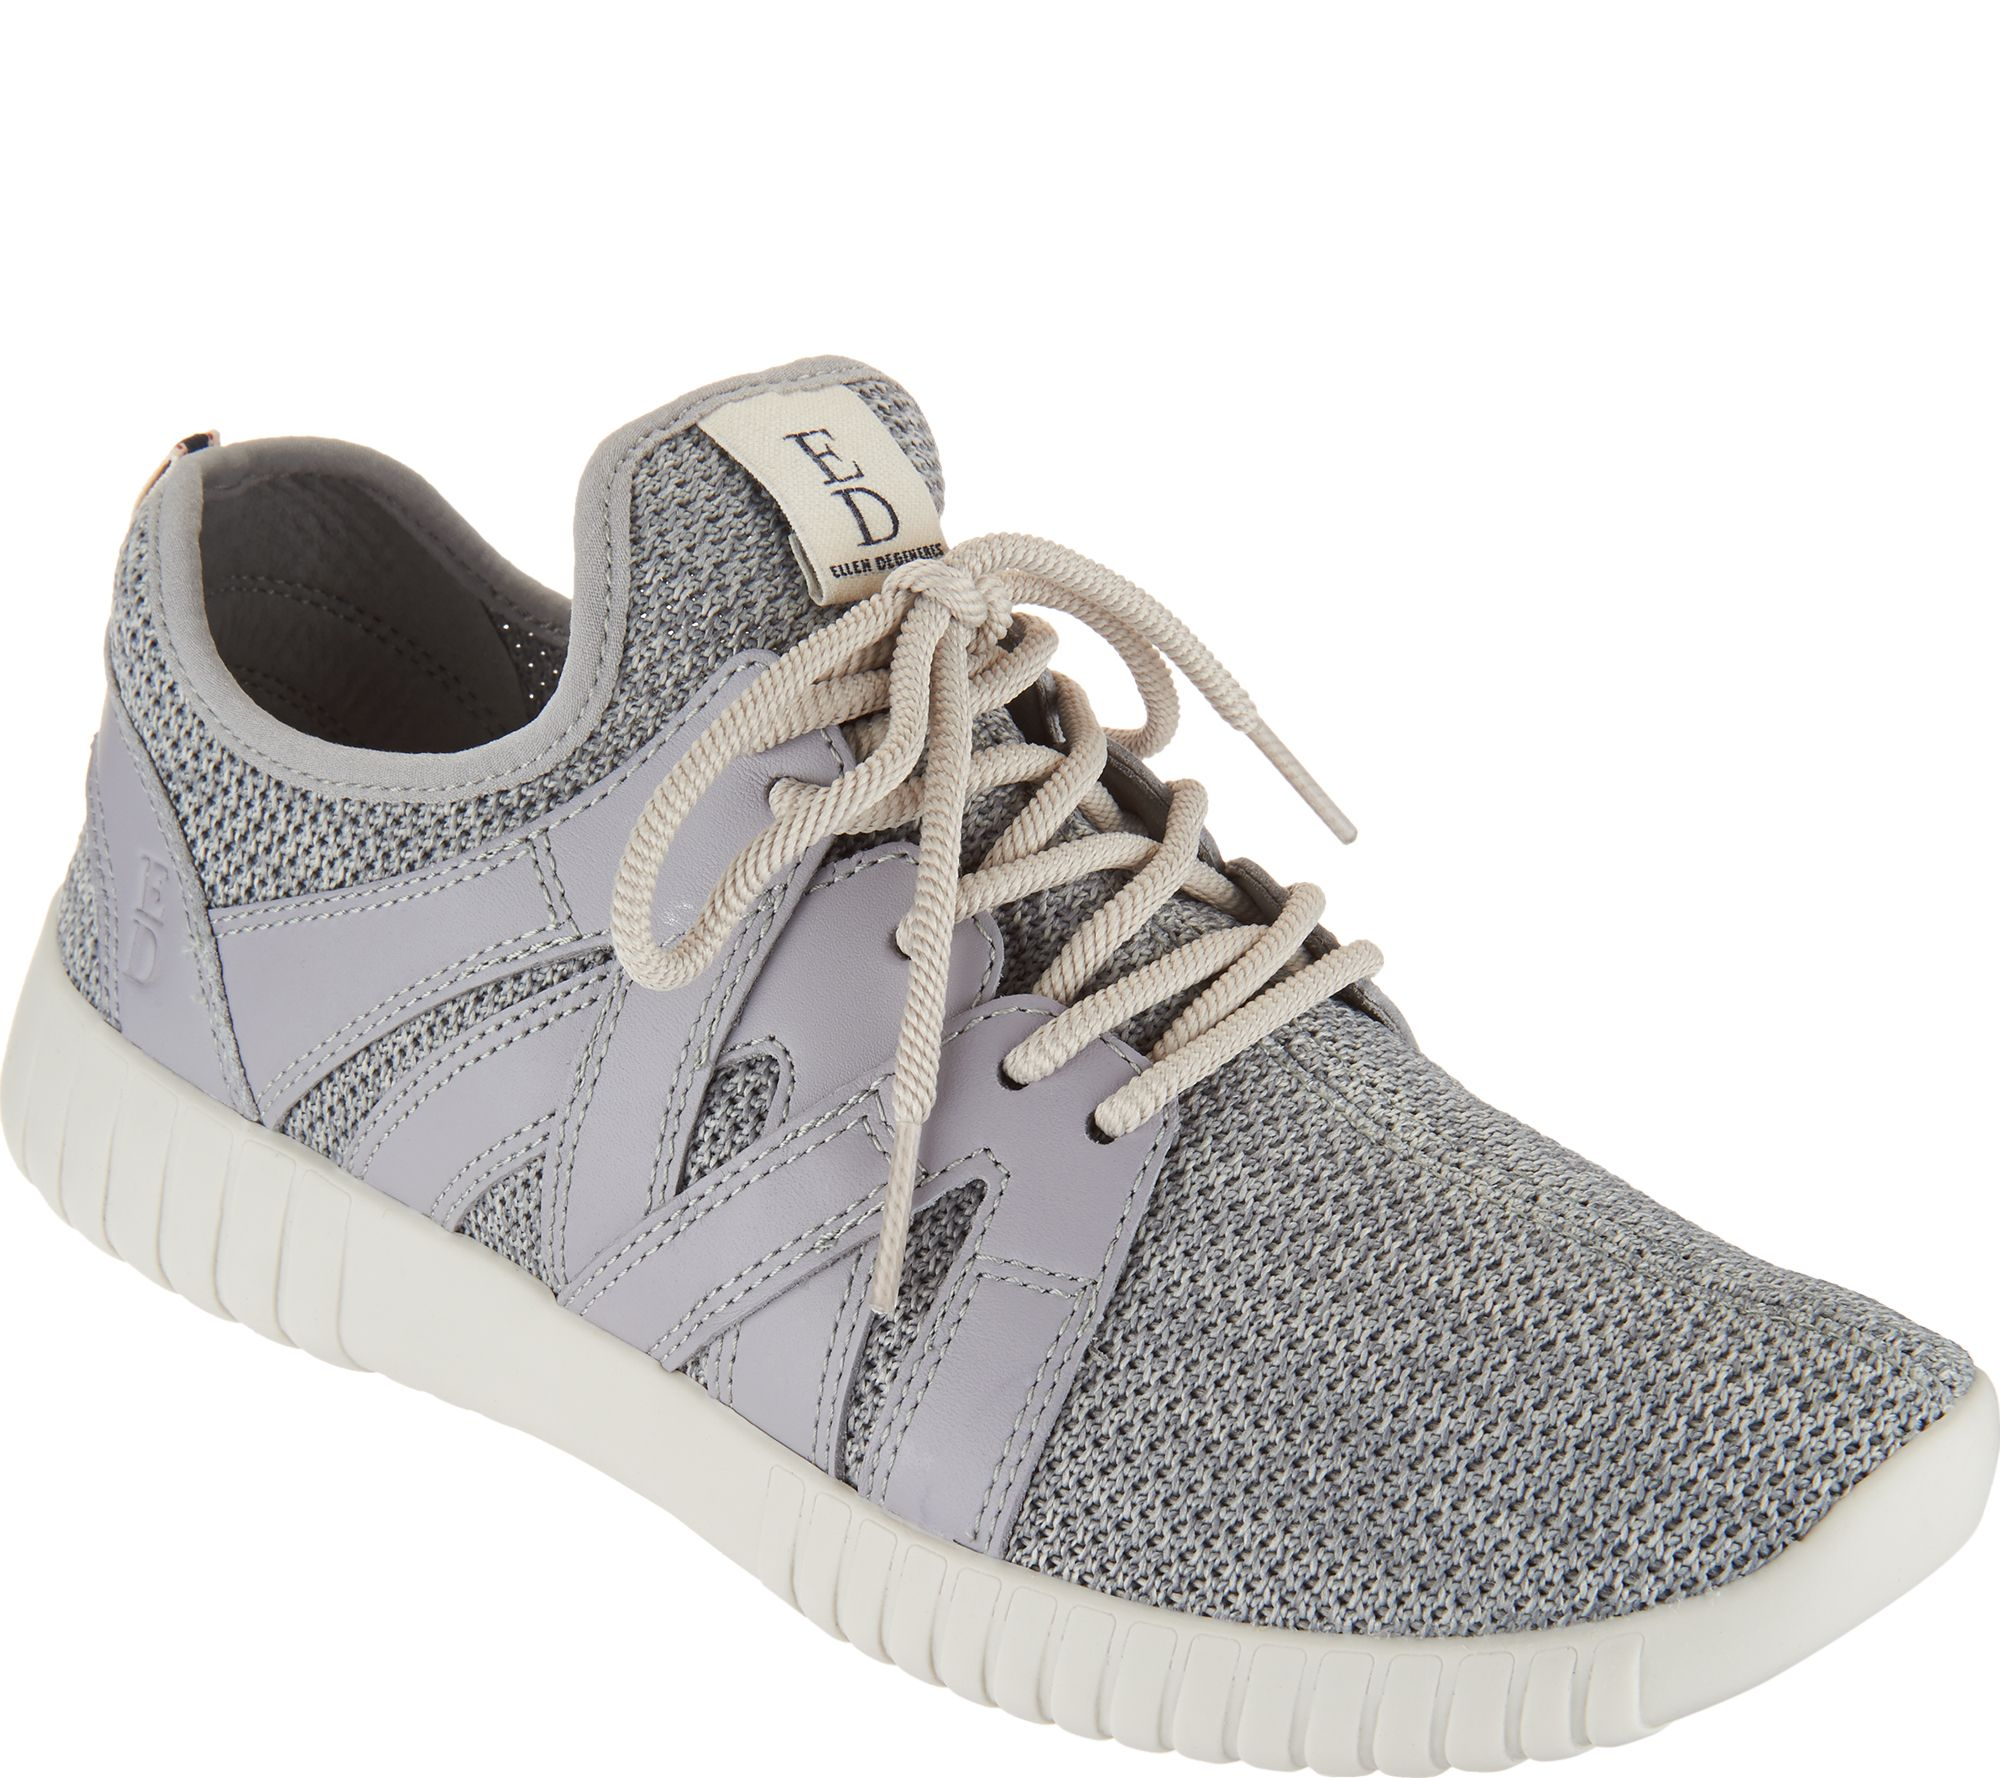 78bfd6006f7 ED Ellen DeGeneres Knit   Leather Sneakers - Havala - Page 1 — QVC.com